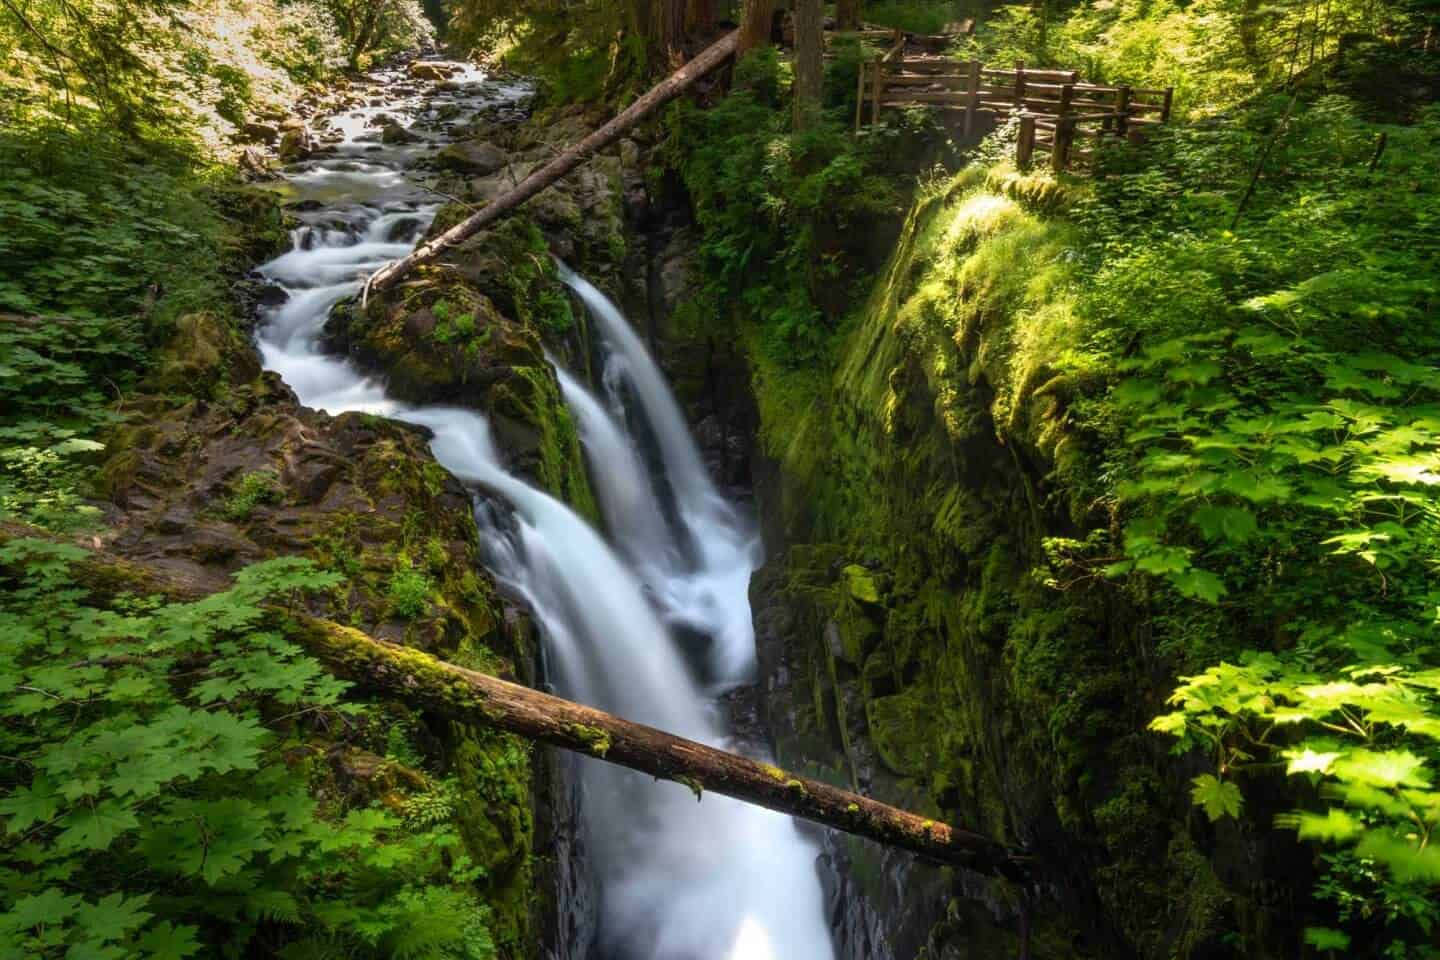 Sol Duc Falls flows through greenery in Olympic National Park